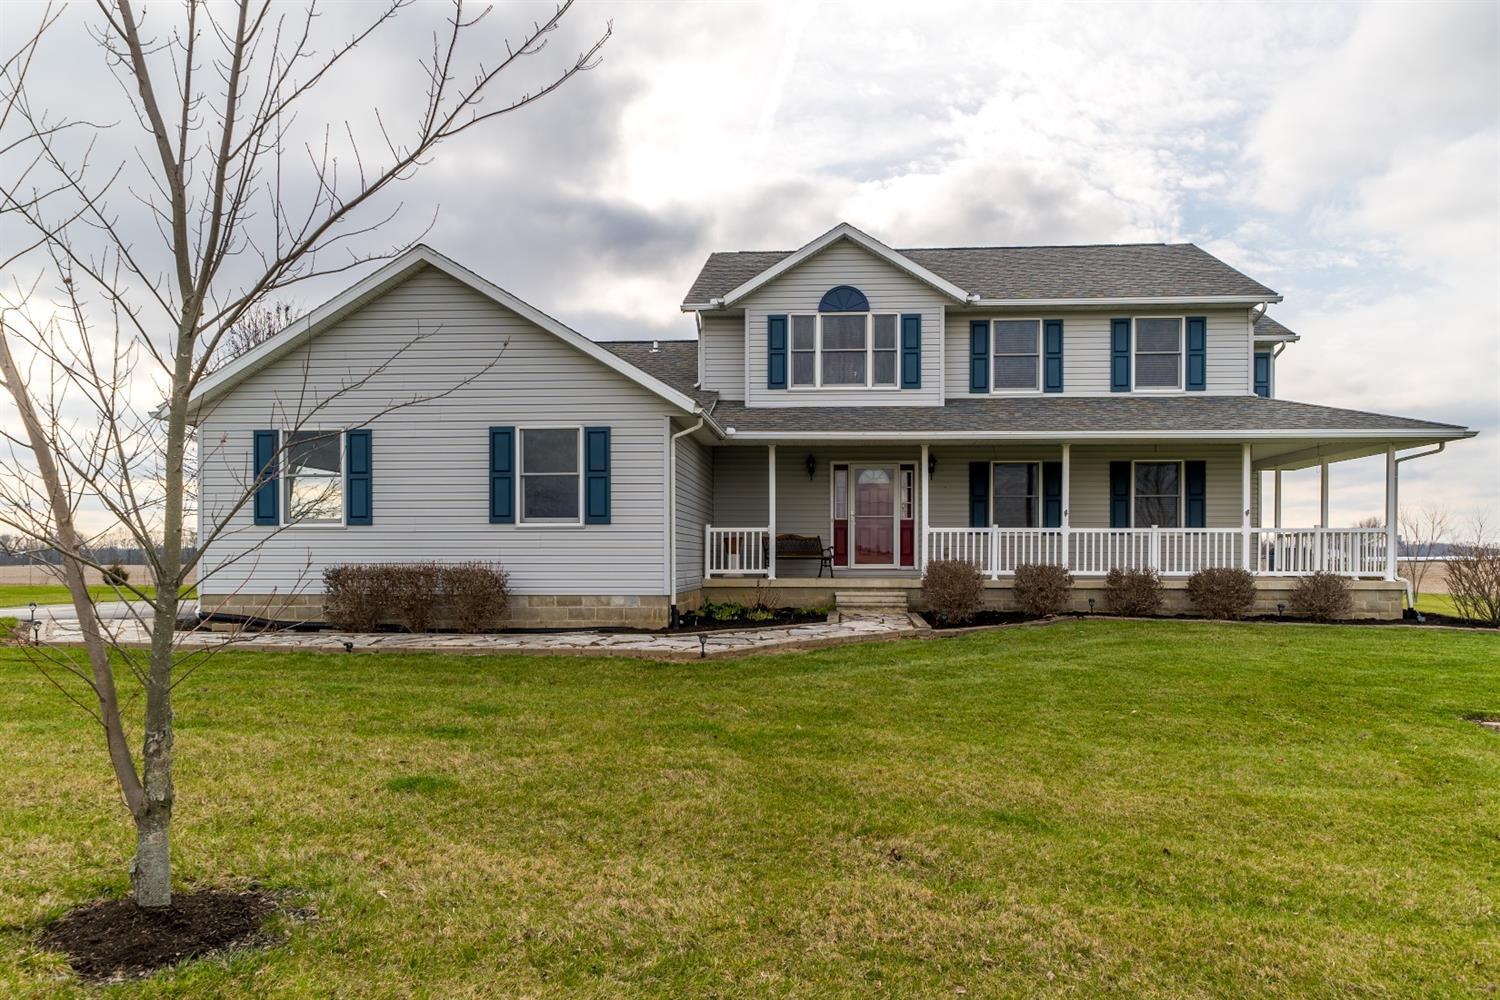 395 Medway Carlisle Rd Clark County, OH